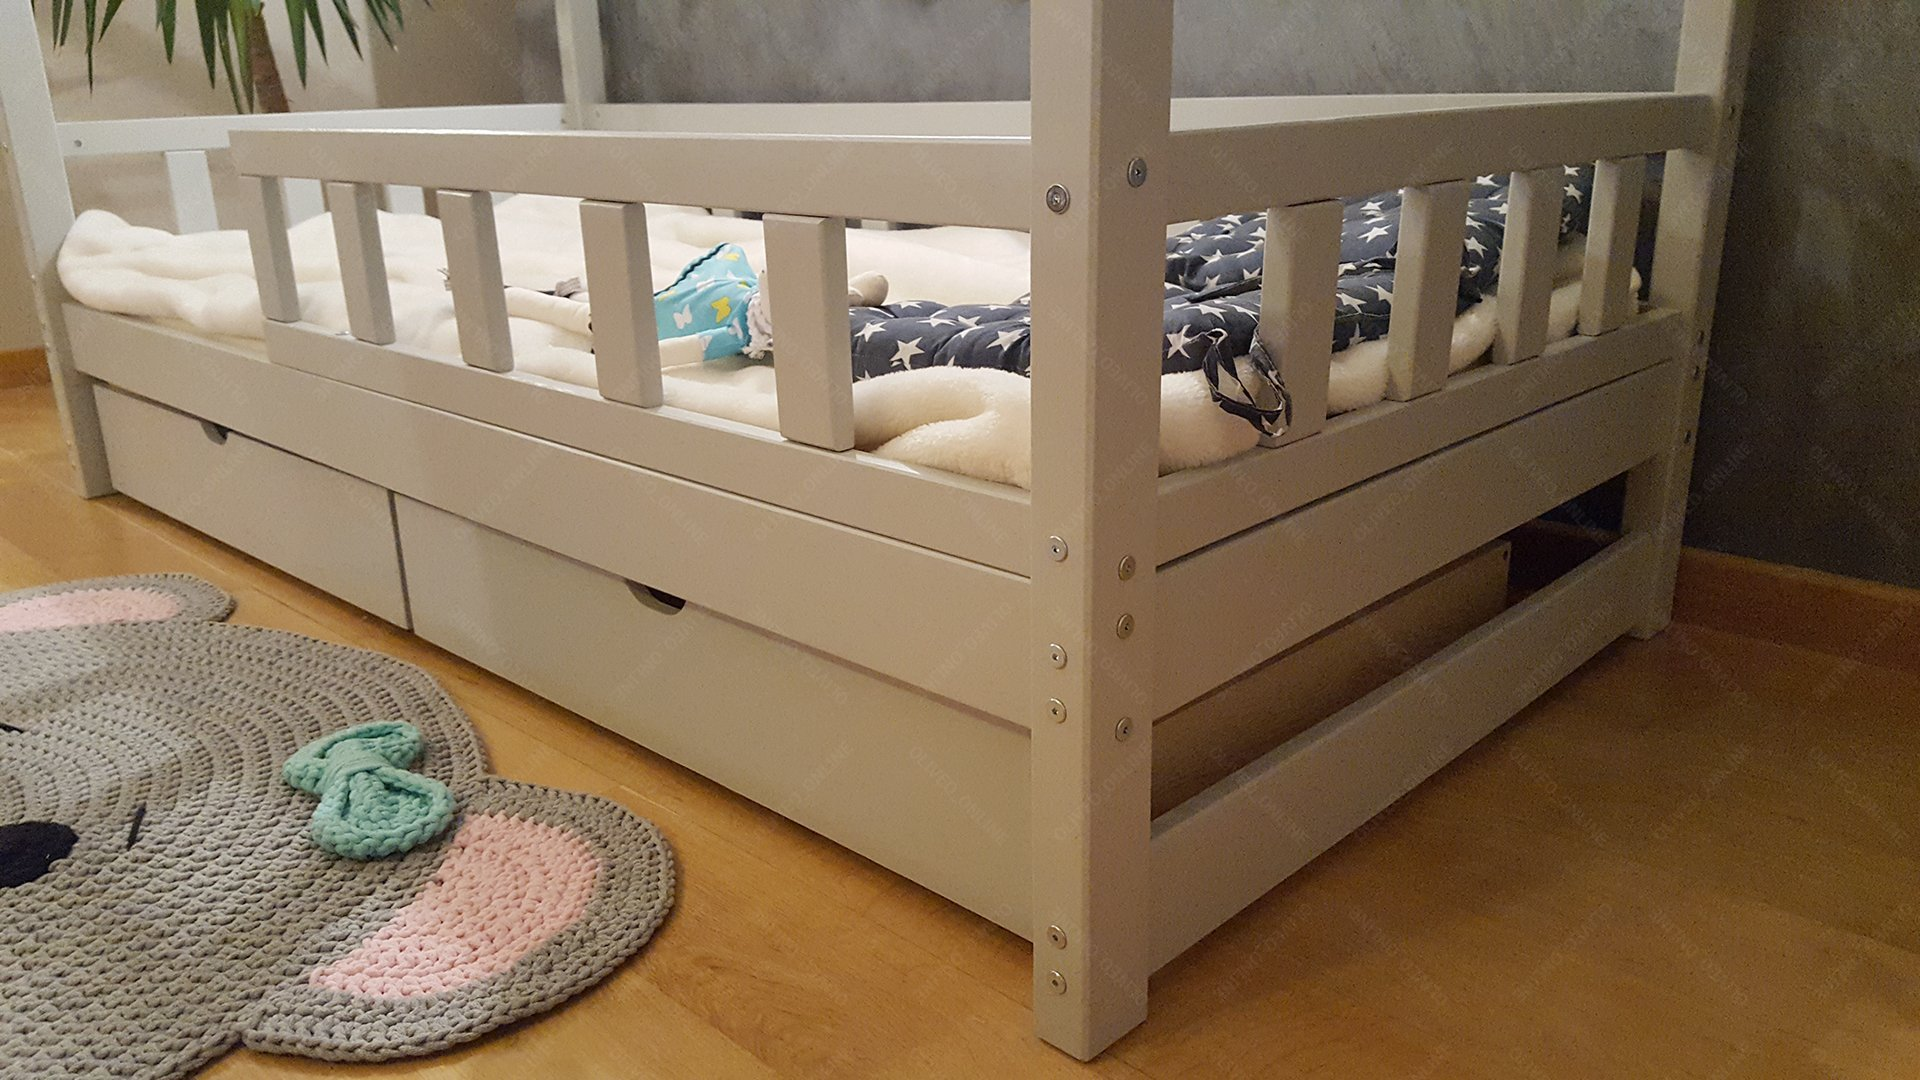 """Oliveo House bed with barriers and drawer, children bed house, bed for children, kids bed,home bed (200 x 160 cm, Painted) Oliveo highest quality products available in various colours and sizes all our products are EU certified for children safety and highest quality Our Auctions Feedbacks About Us Contact Top quality, premium children furniture online A Scandinavian style, handmade bed (""""house bed"""") for your child. Colour: natural wood, NEW model, fast processing (10 days) !!!!!!! Bed for children in Scandinavian style, which becomes a safe place for the sleep of your child and underlines the elegant and modern design of your interior. Handmade of knotless first-class pine wood. Each bed section is ground and rounded manually to ensur 5"""